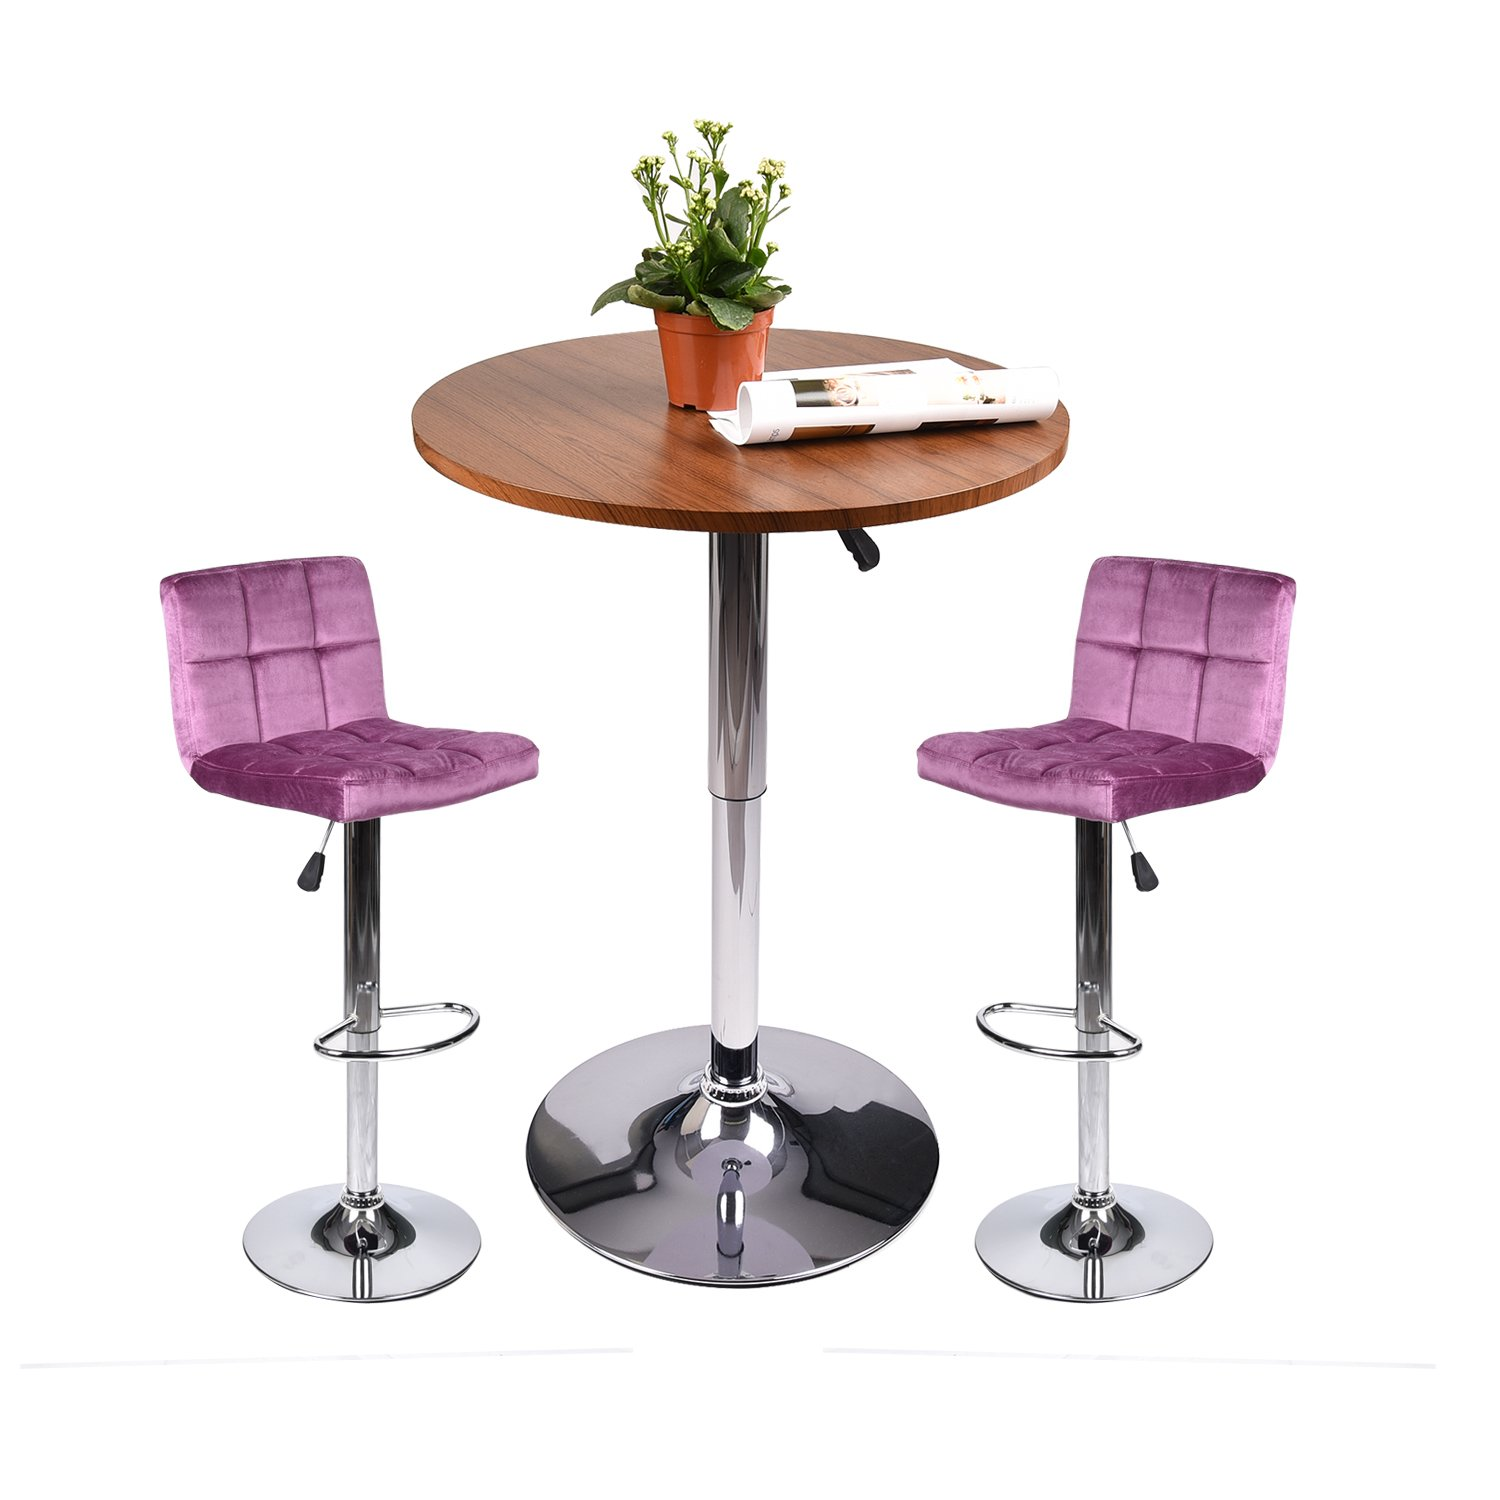 Elecwish Pub Table with Bar Stools Set for Kitchen Home Dining Room (Amaranth Set A)